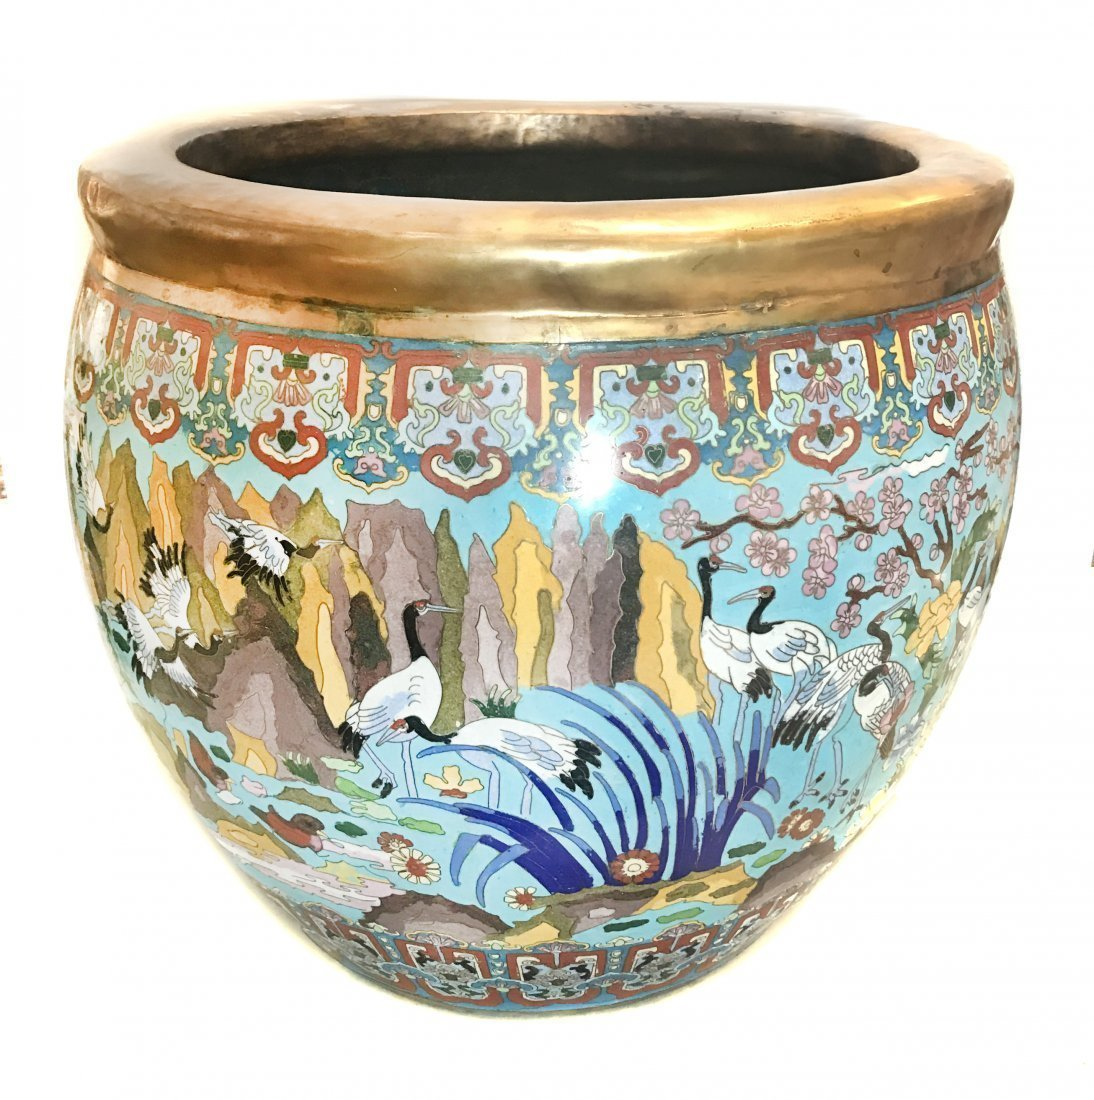 LARGE CLOISONNÉ ENAMEL 'BIRDS IN PARADISE' BOWL,CHINESE